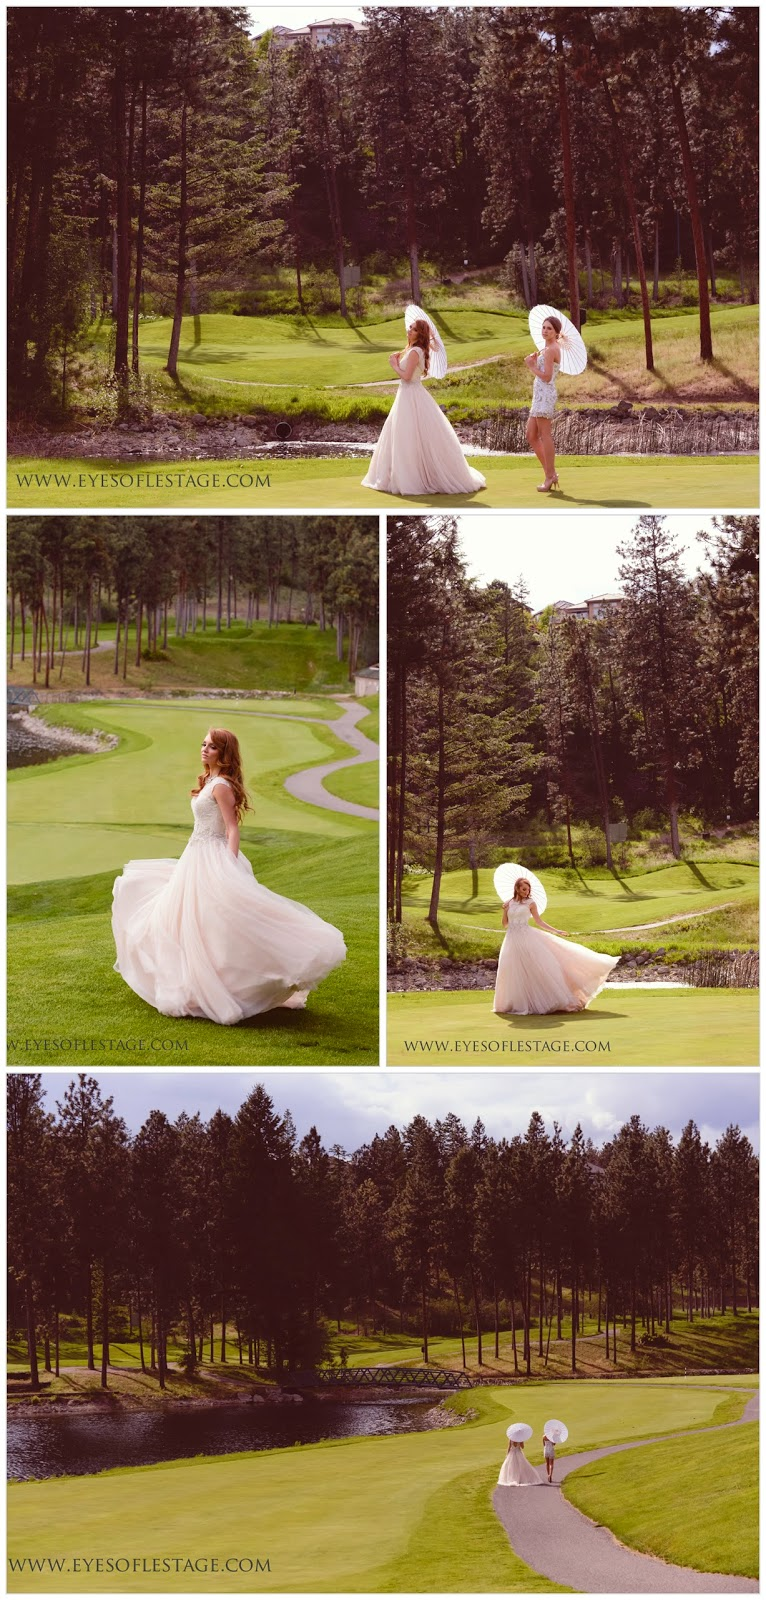 Enzoni, Juliette jewellery, Vera Wang, Sherri Hill. Okanagan Golf club